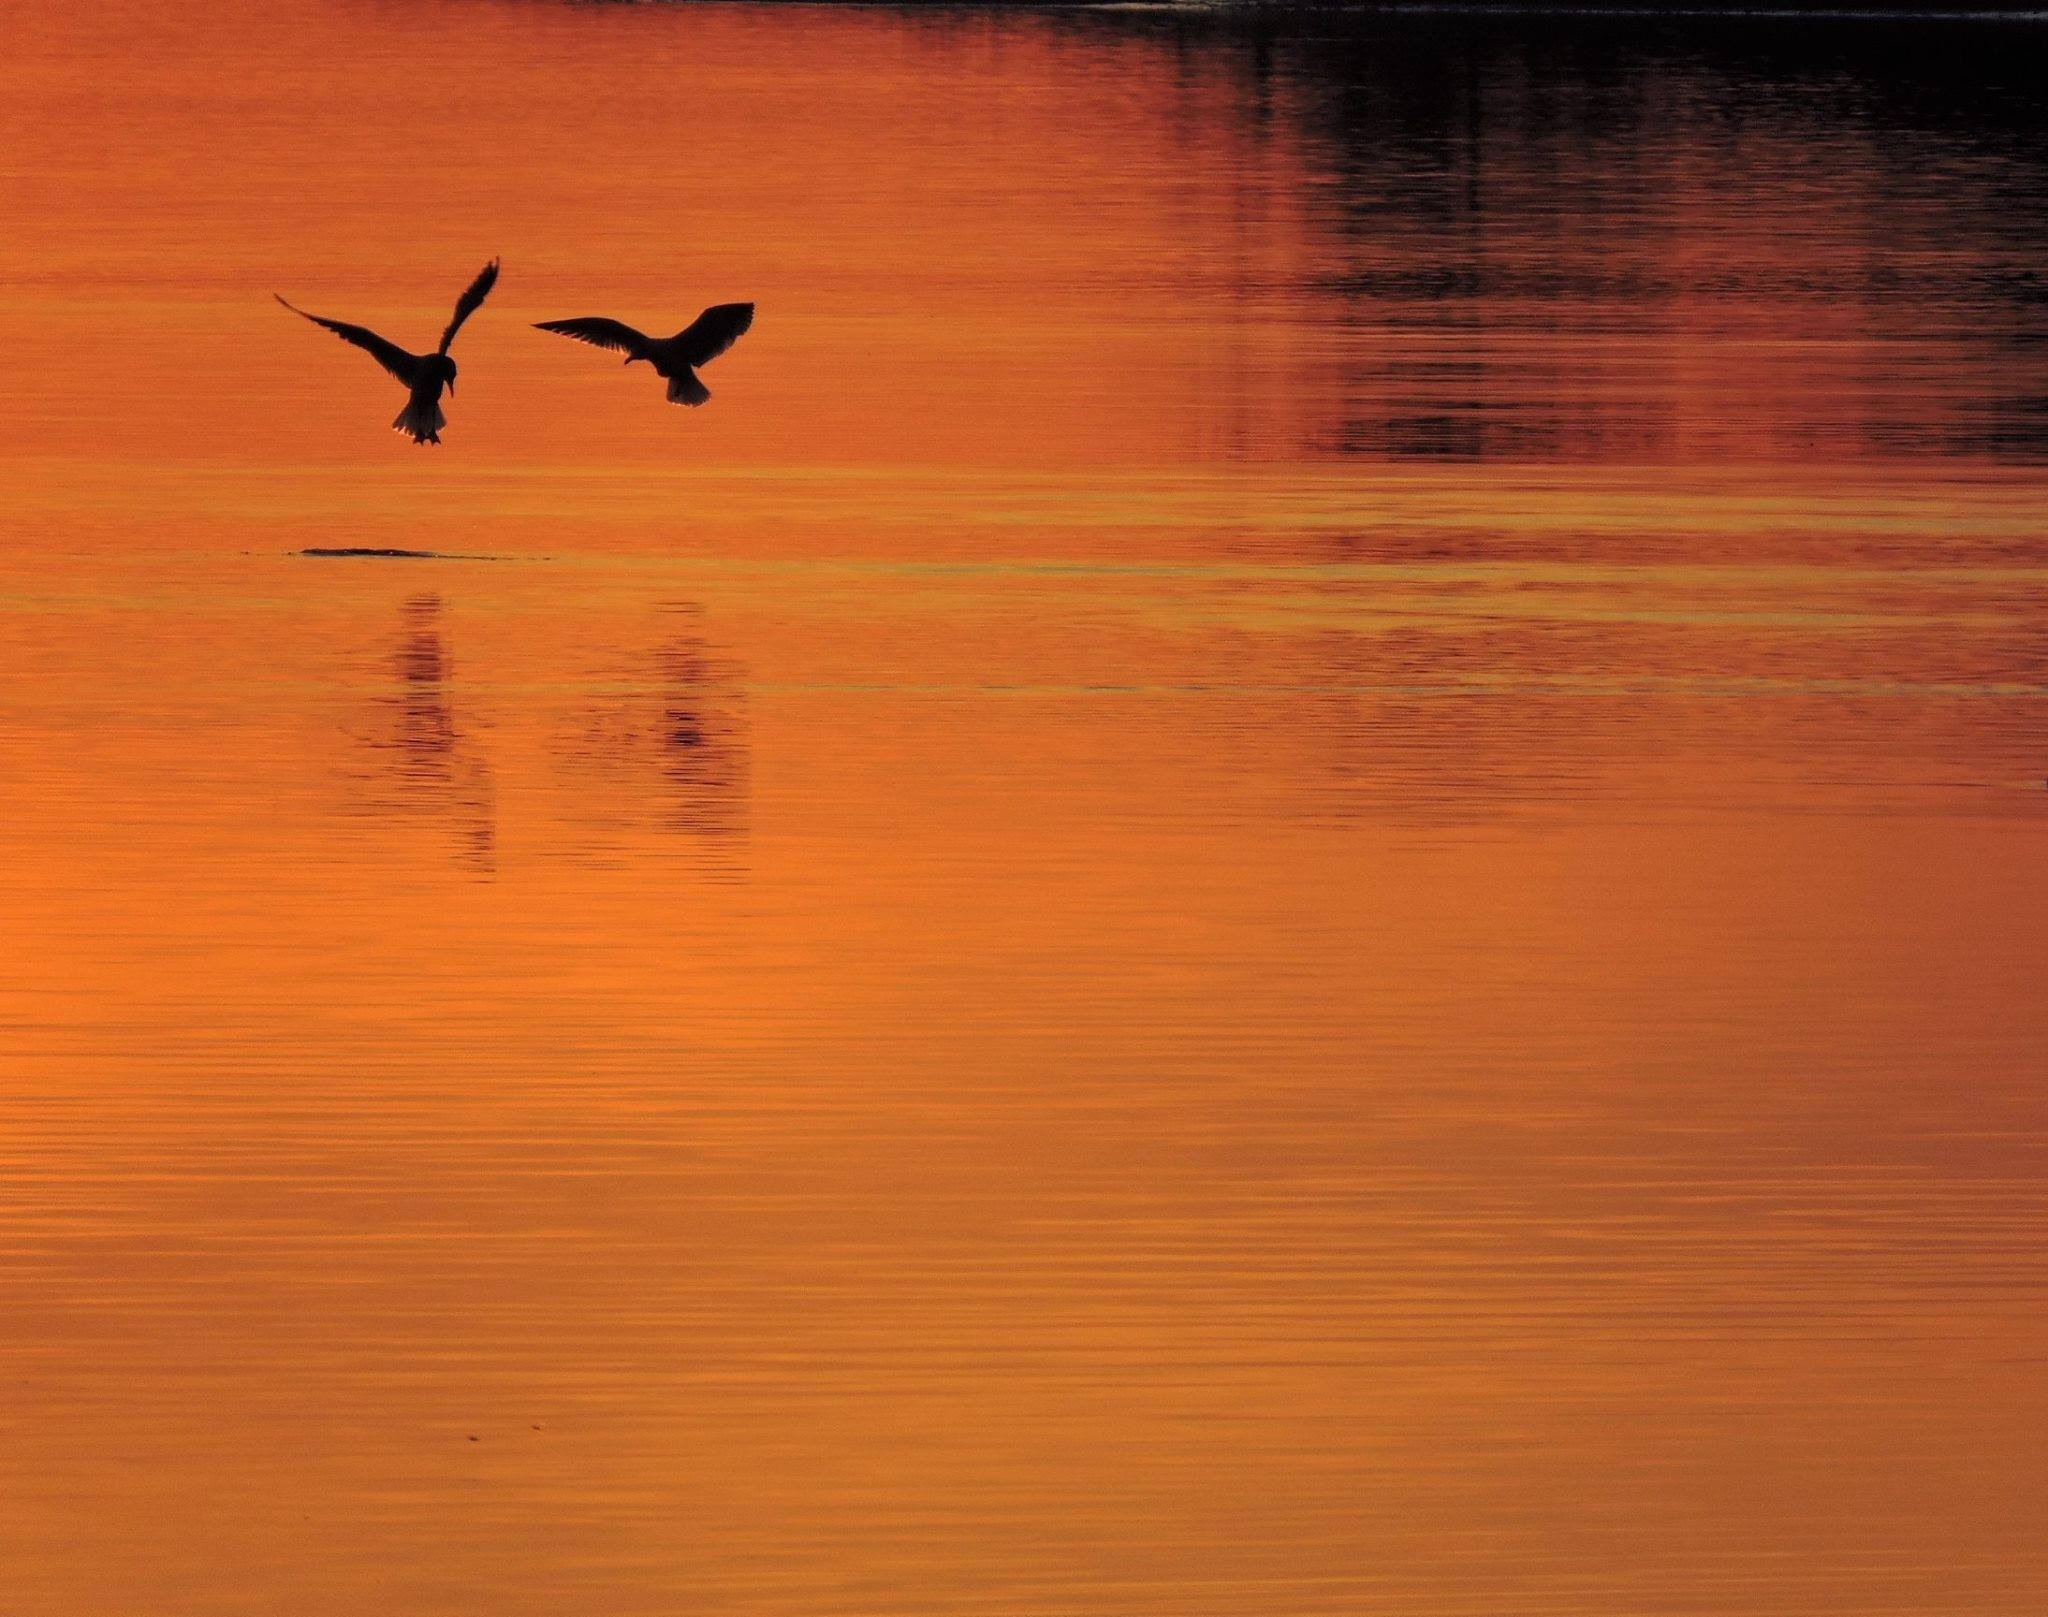 Sunset landing by Susan Harrison